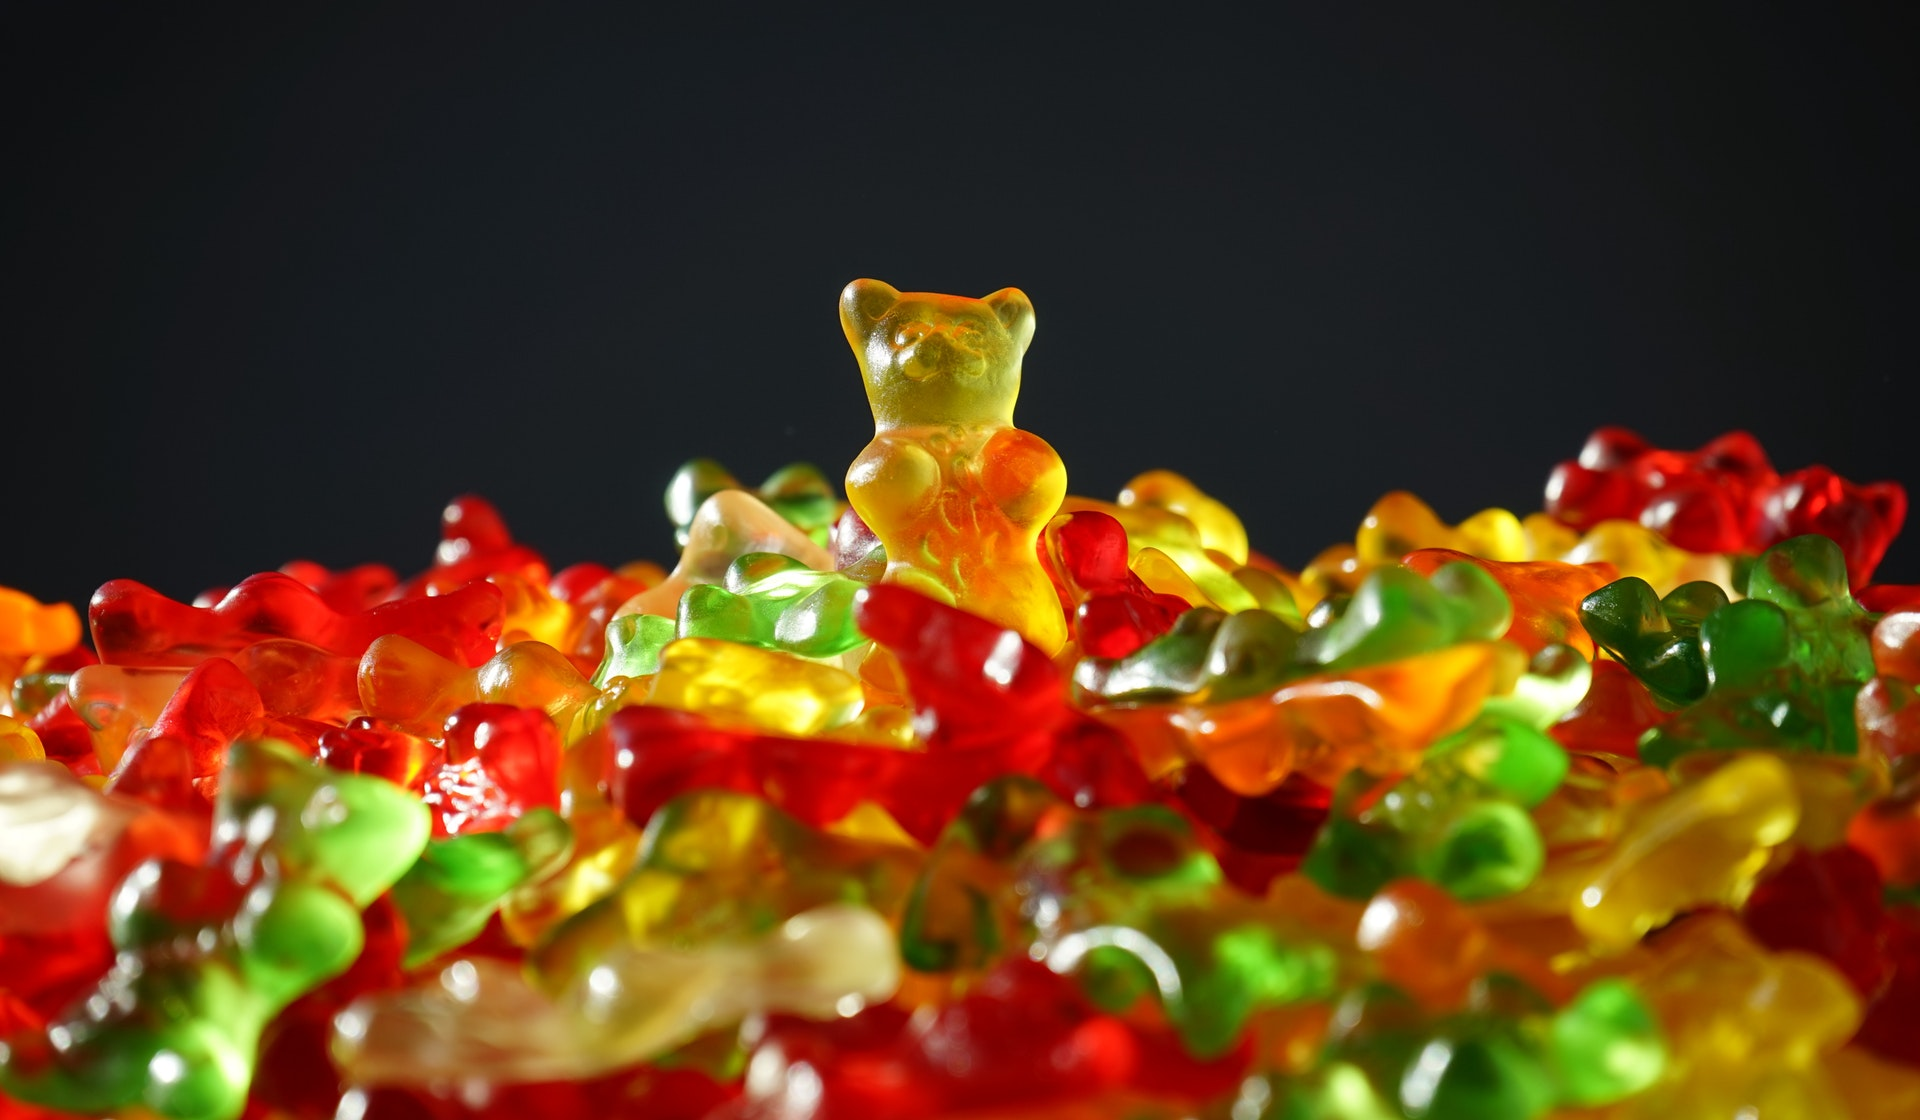 bear-bears-candy-55825